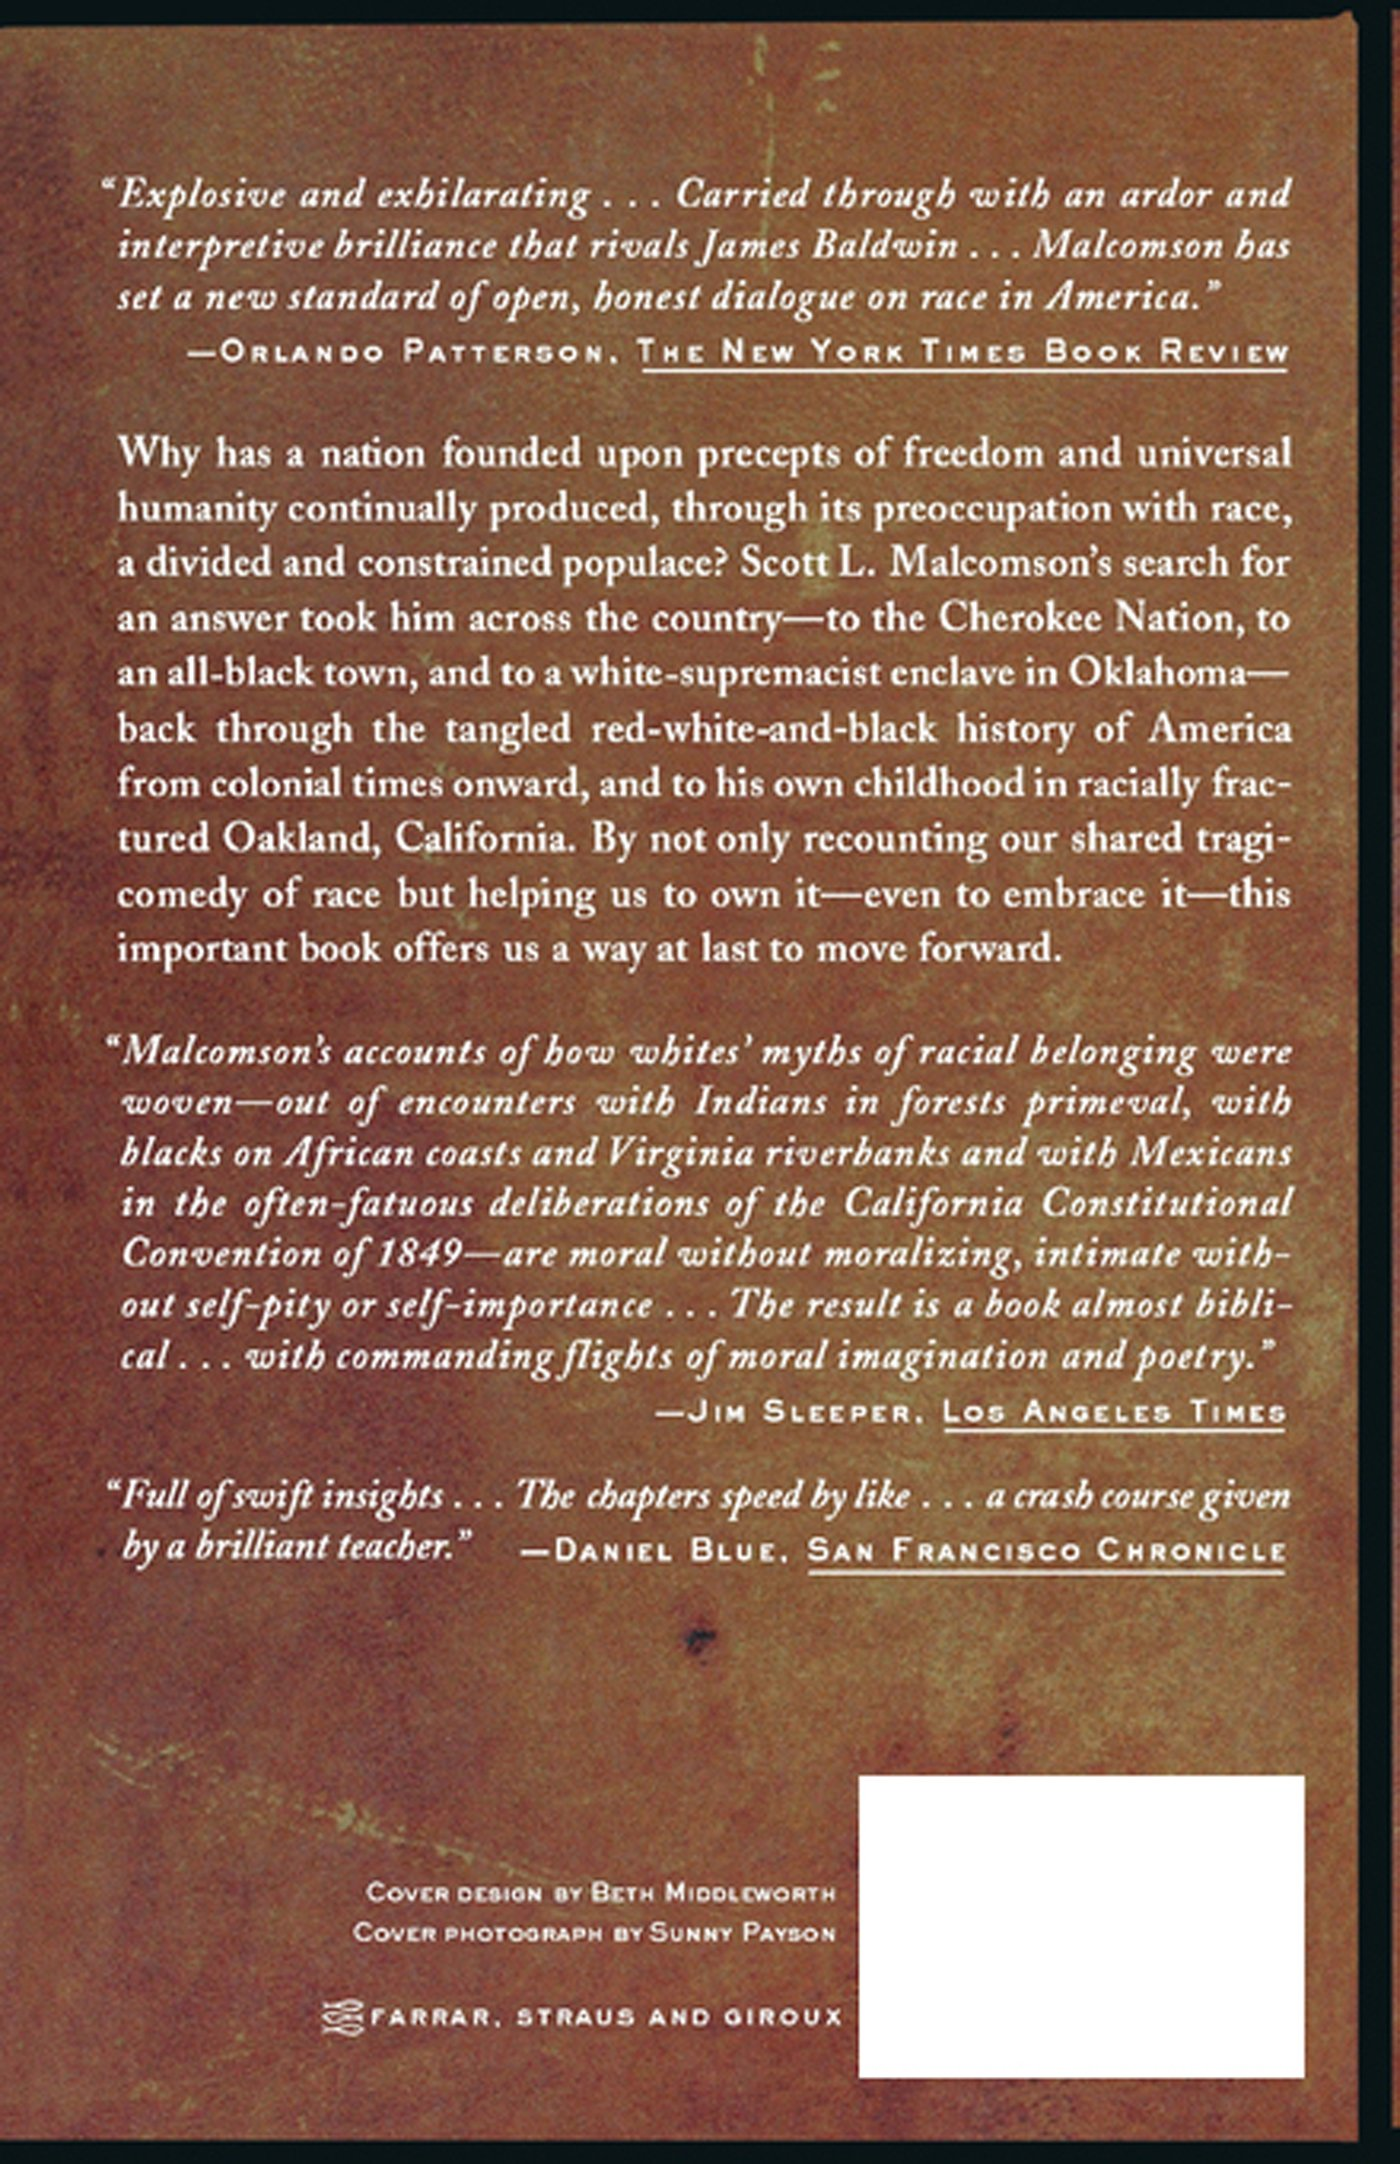 One Drop of Blood: The American Misadventure of Race: Scott Malcomson:  9780374527945: Amazon.com: Books